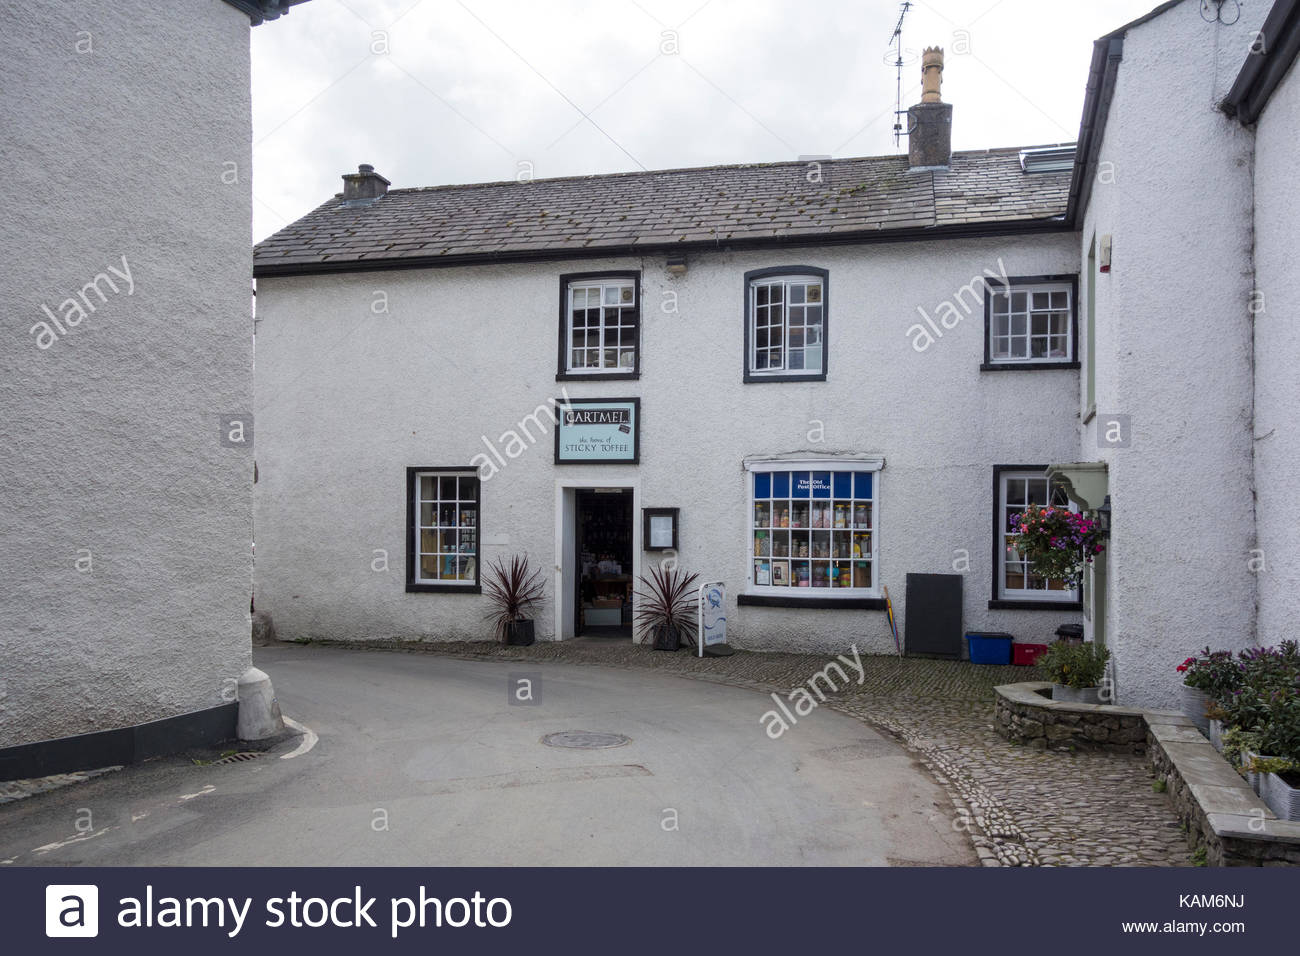 Cartmel village in Cumbria on the route of the Bay Cycleway and home of the sticky toffee pudding - Stock Image